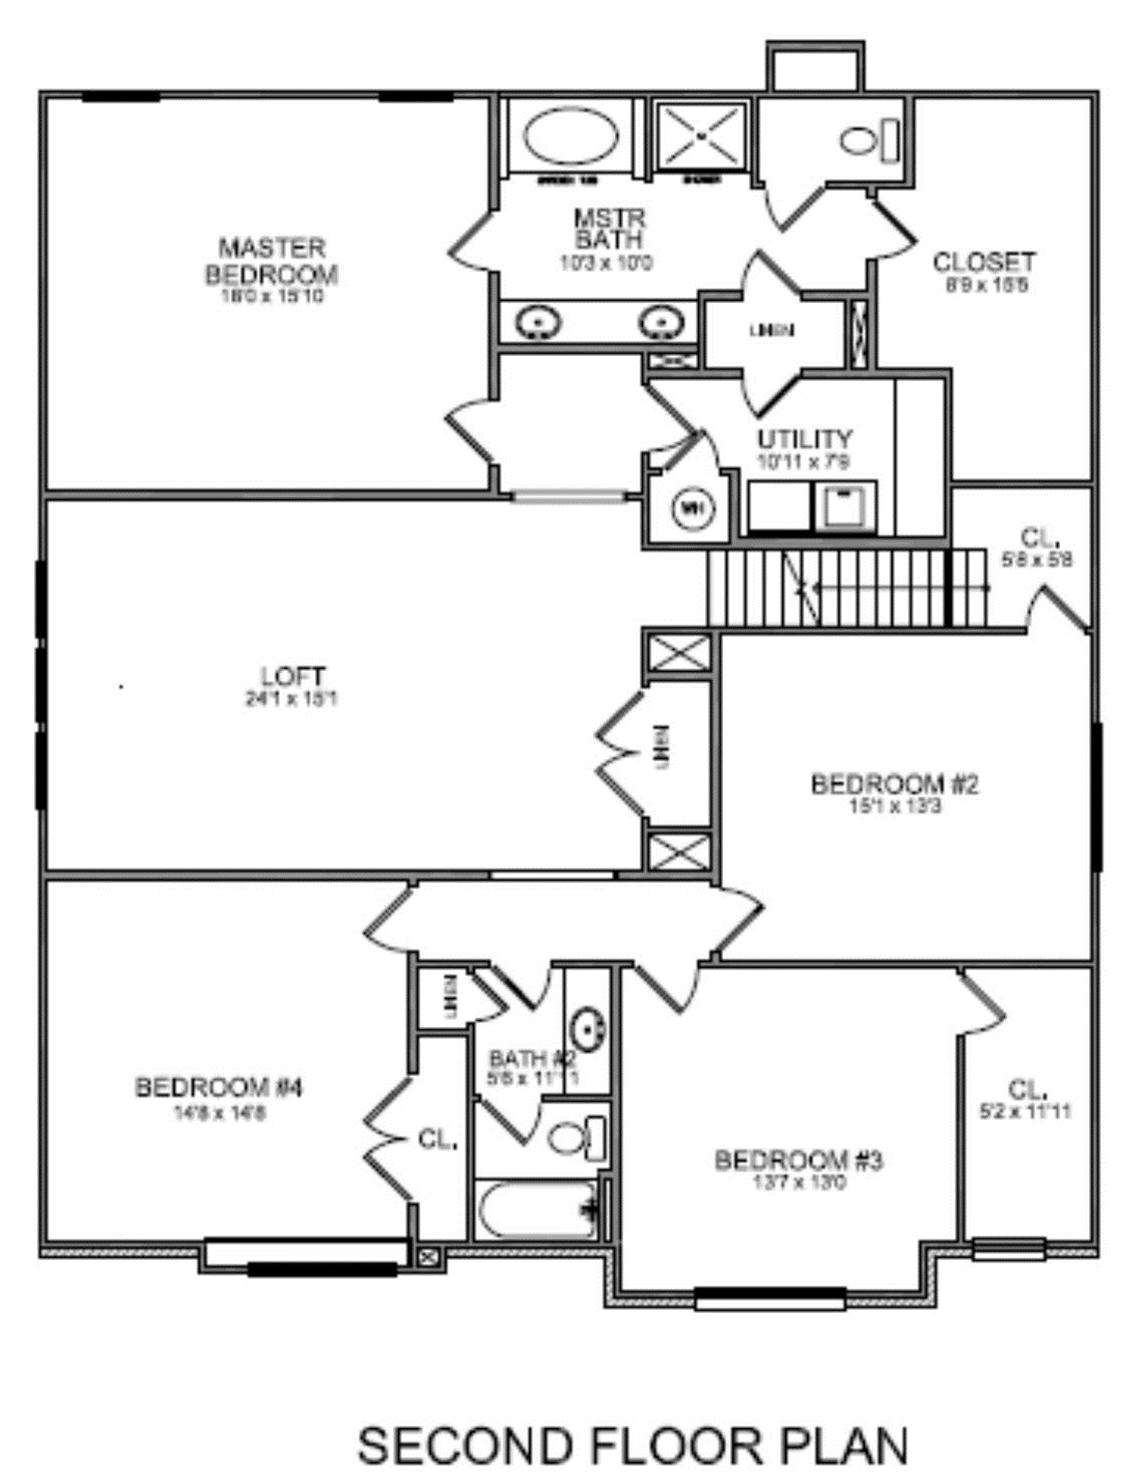 Master Bedroom Upstairs Floor Plans bathroom and walk in closet floor plans master bedroom floor plans